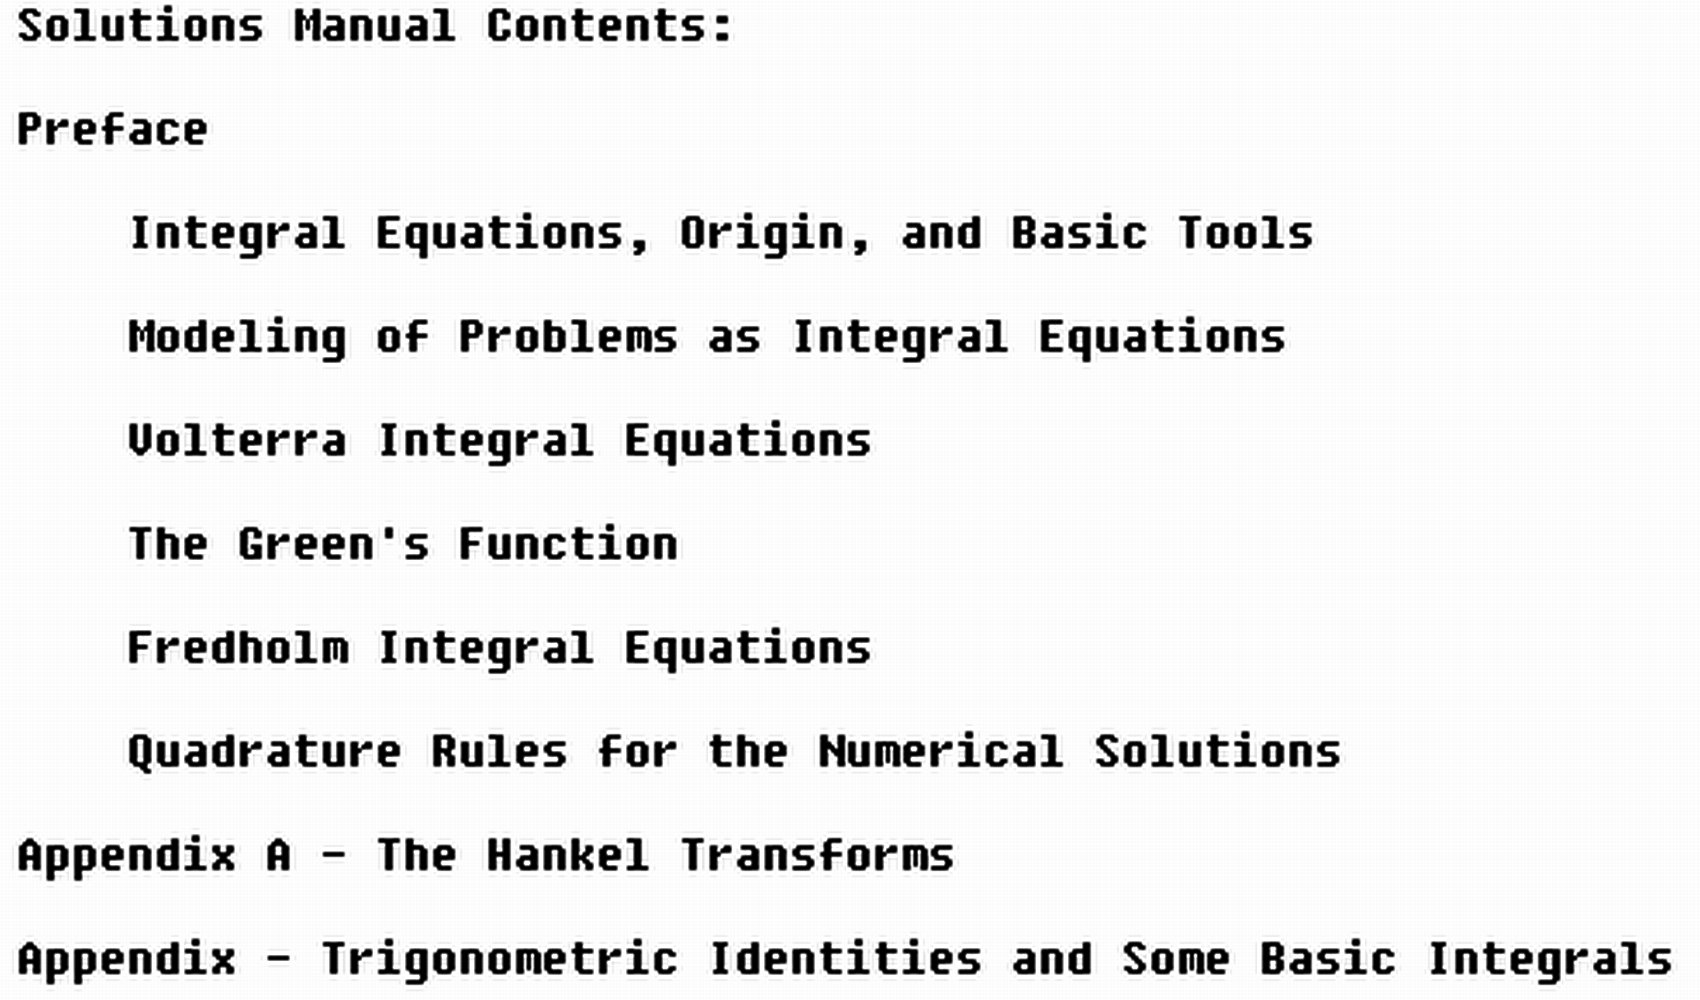 Student's Solutions Manual to Accompany Introduction to Integral Equations  with Applications: With Additional Solved Problems: Abdul J. Jerri: ...